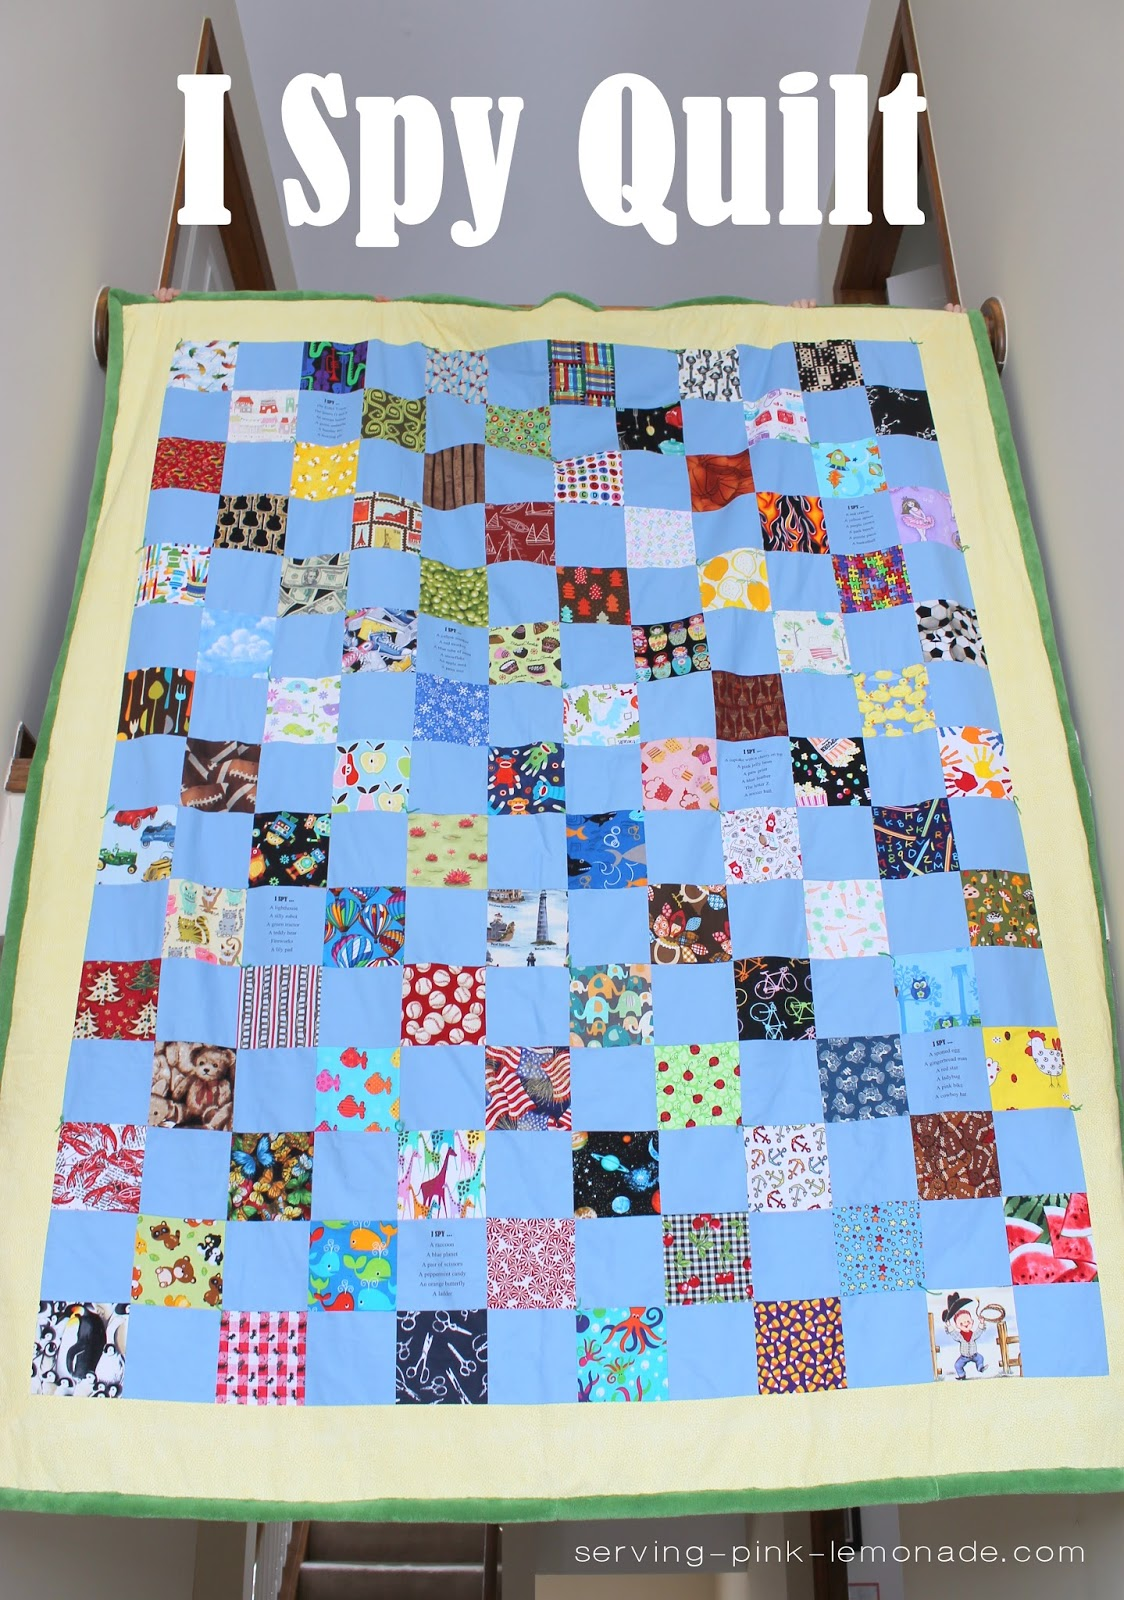 Serving Pink Lemonade I Spy Quilt With Ink Jet Printed